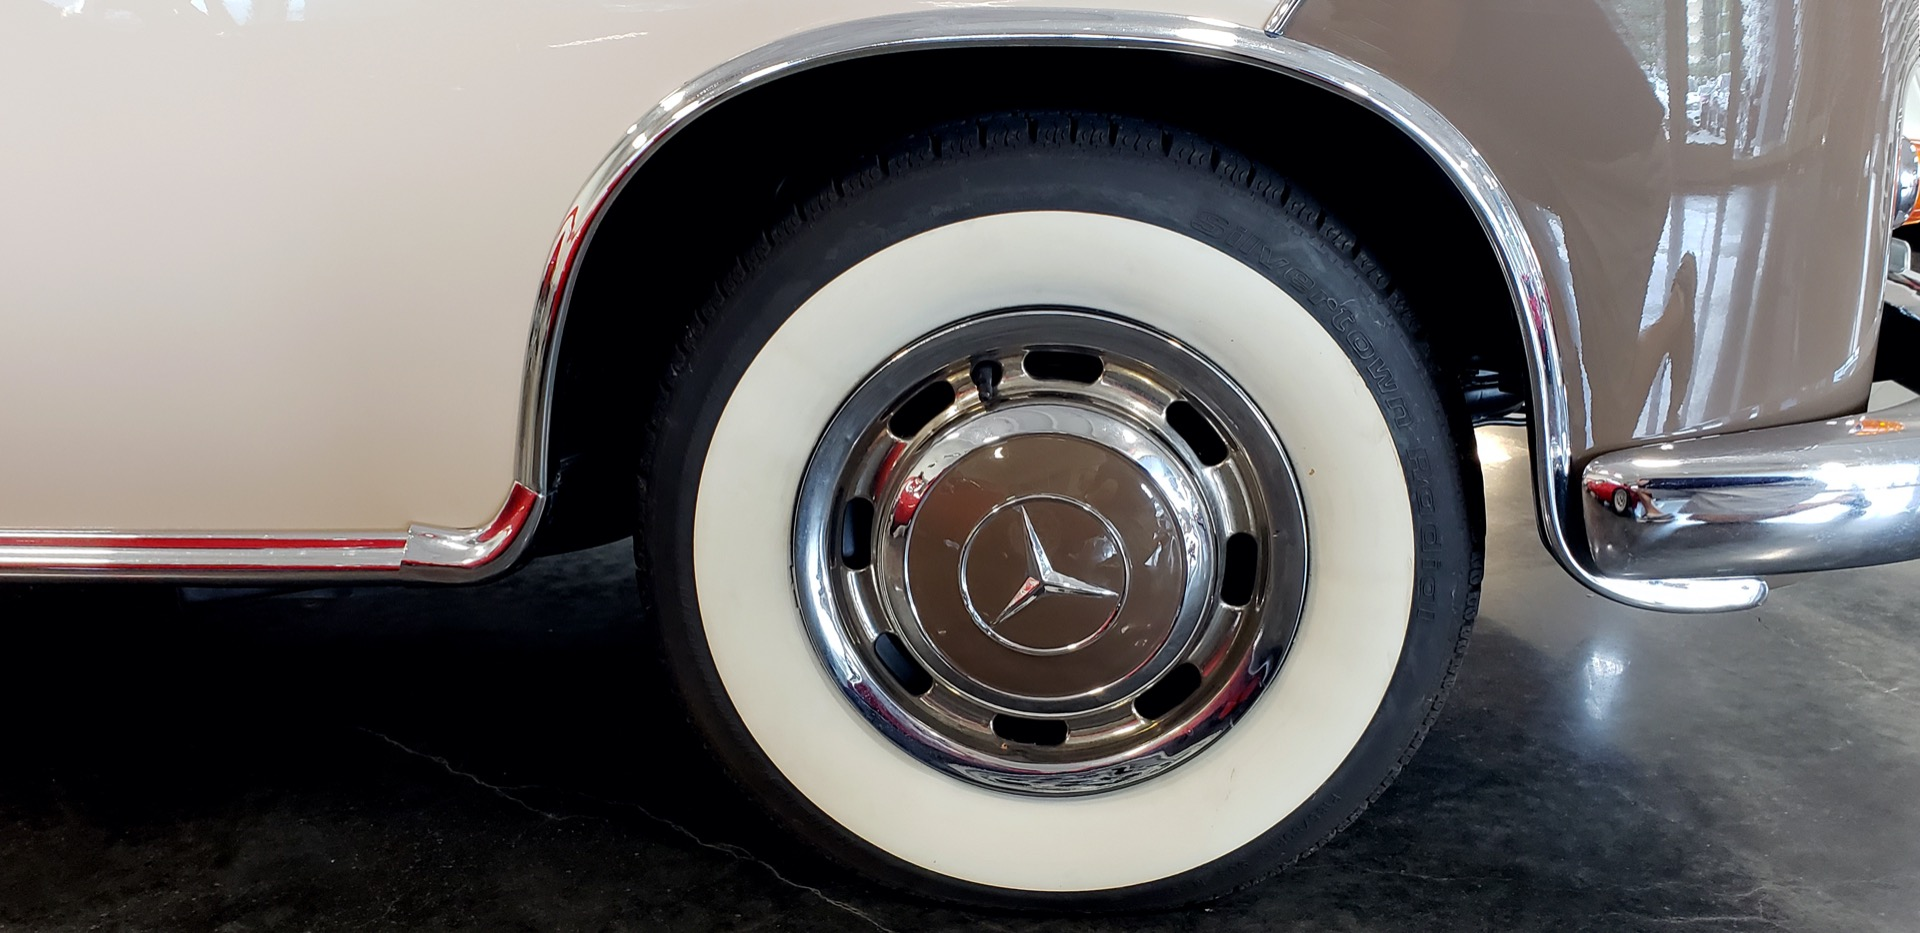 Used 1957 Mercedes-Benz 220 S Cabriolet - Full Restoration for sale Sold at Formula Imports in Charlotte NC 28227 13